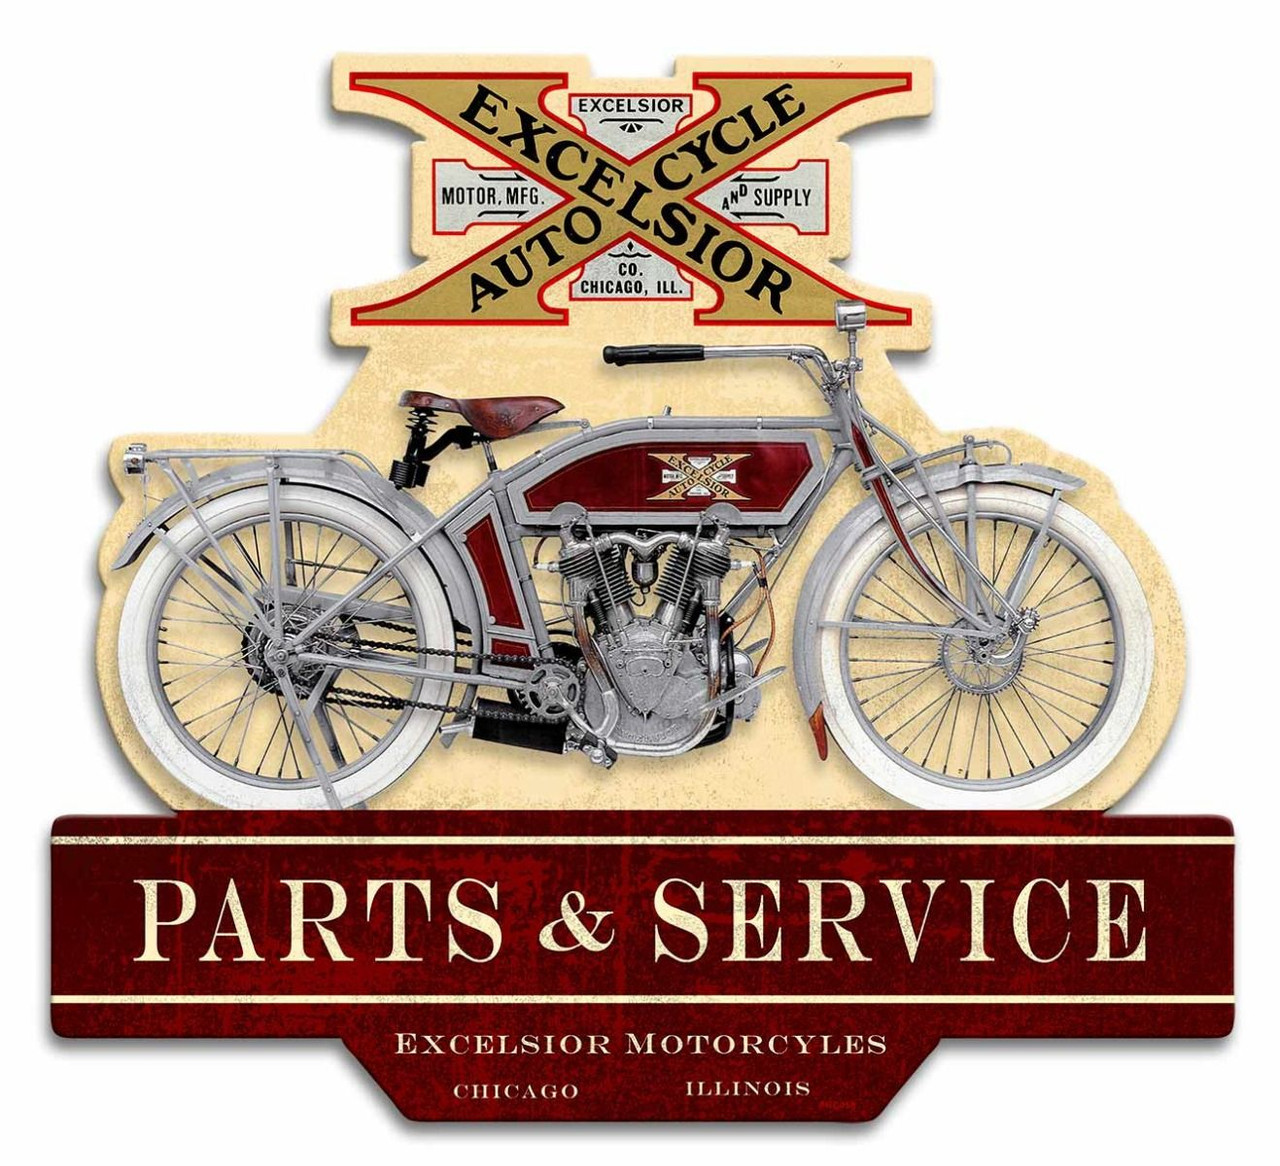 Double Sided Excelsior Motorcycle Metal Sign 17 x 16 Inches